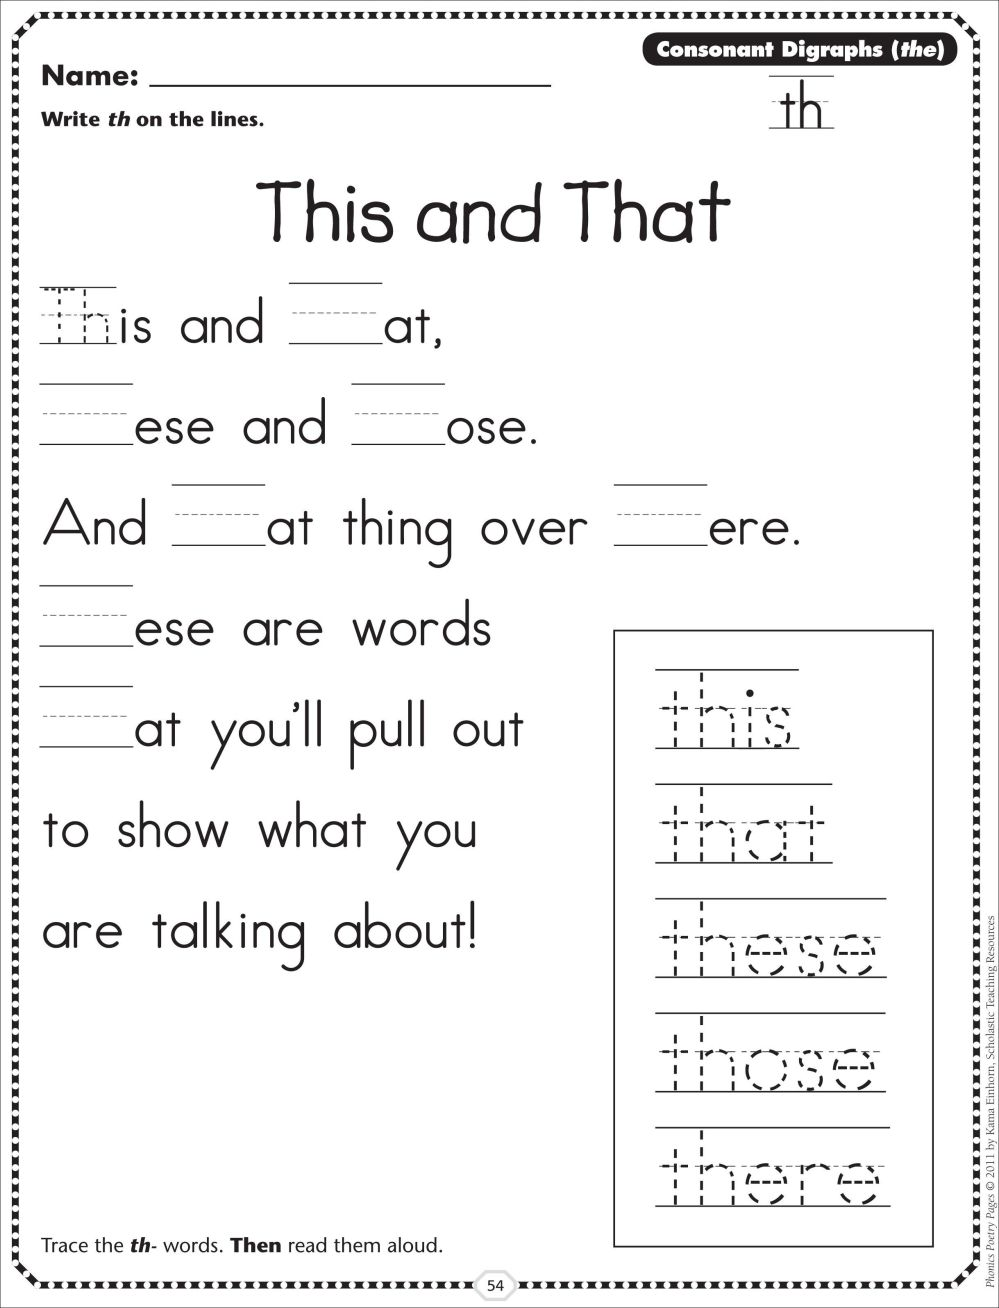 medium resolution of Oo Digraph Worksheets Teaching Resolurces   Printable Worksheets and  Activities for Teachers